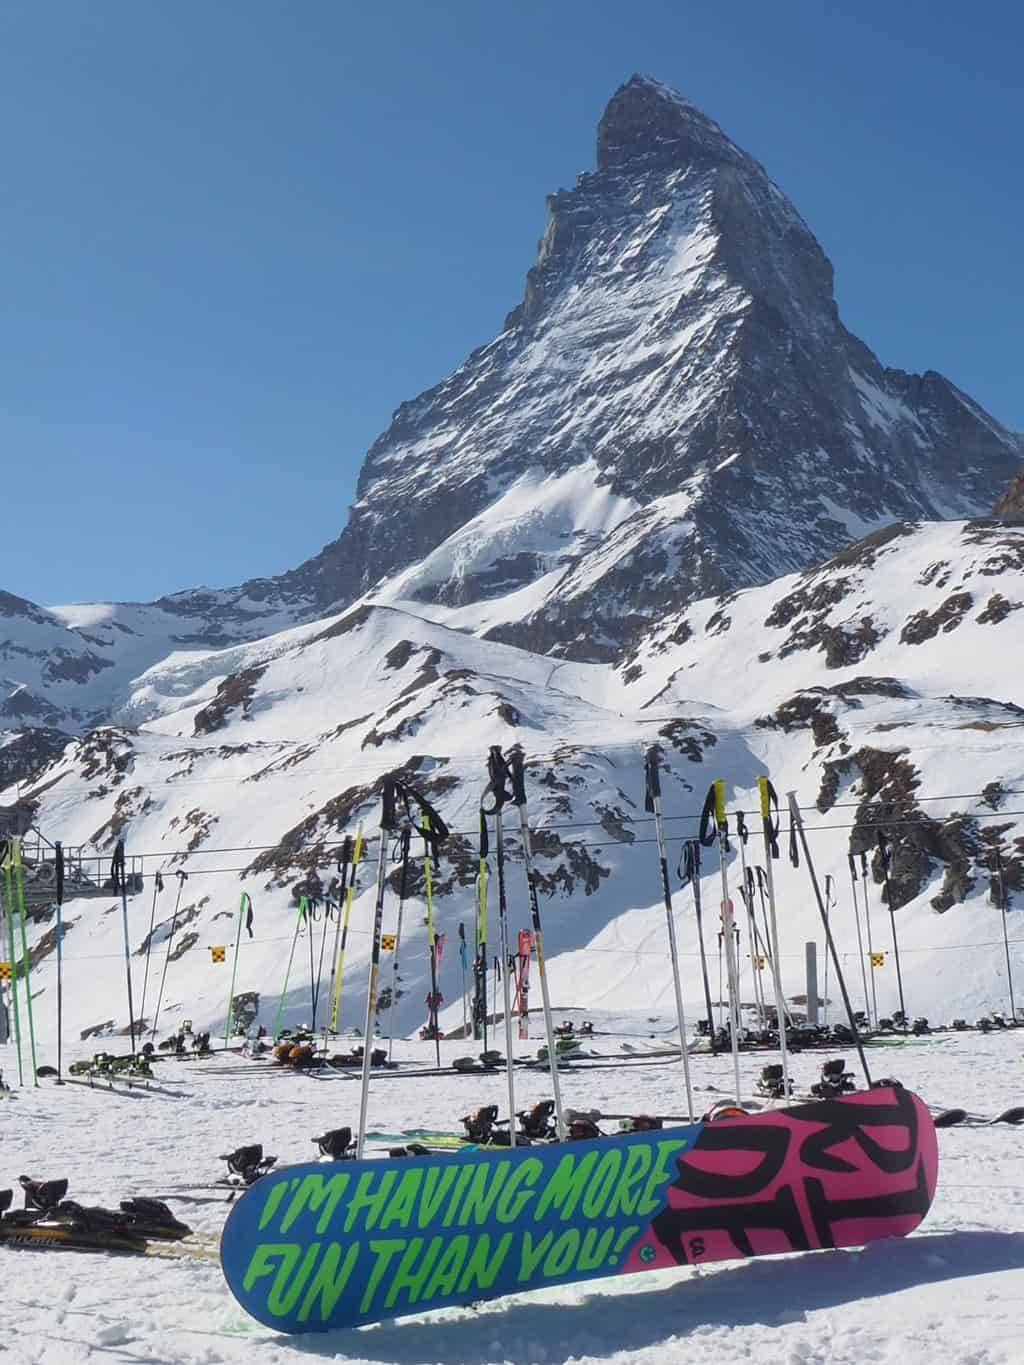 Fascinating Facts about the Matterhorn Zermatt